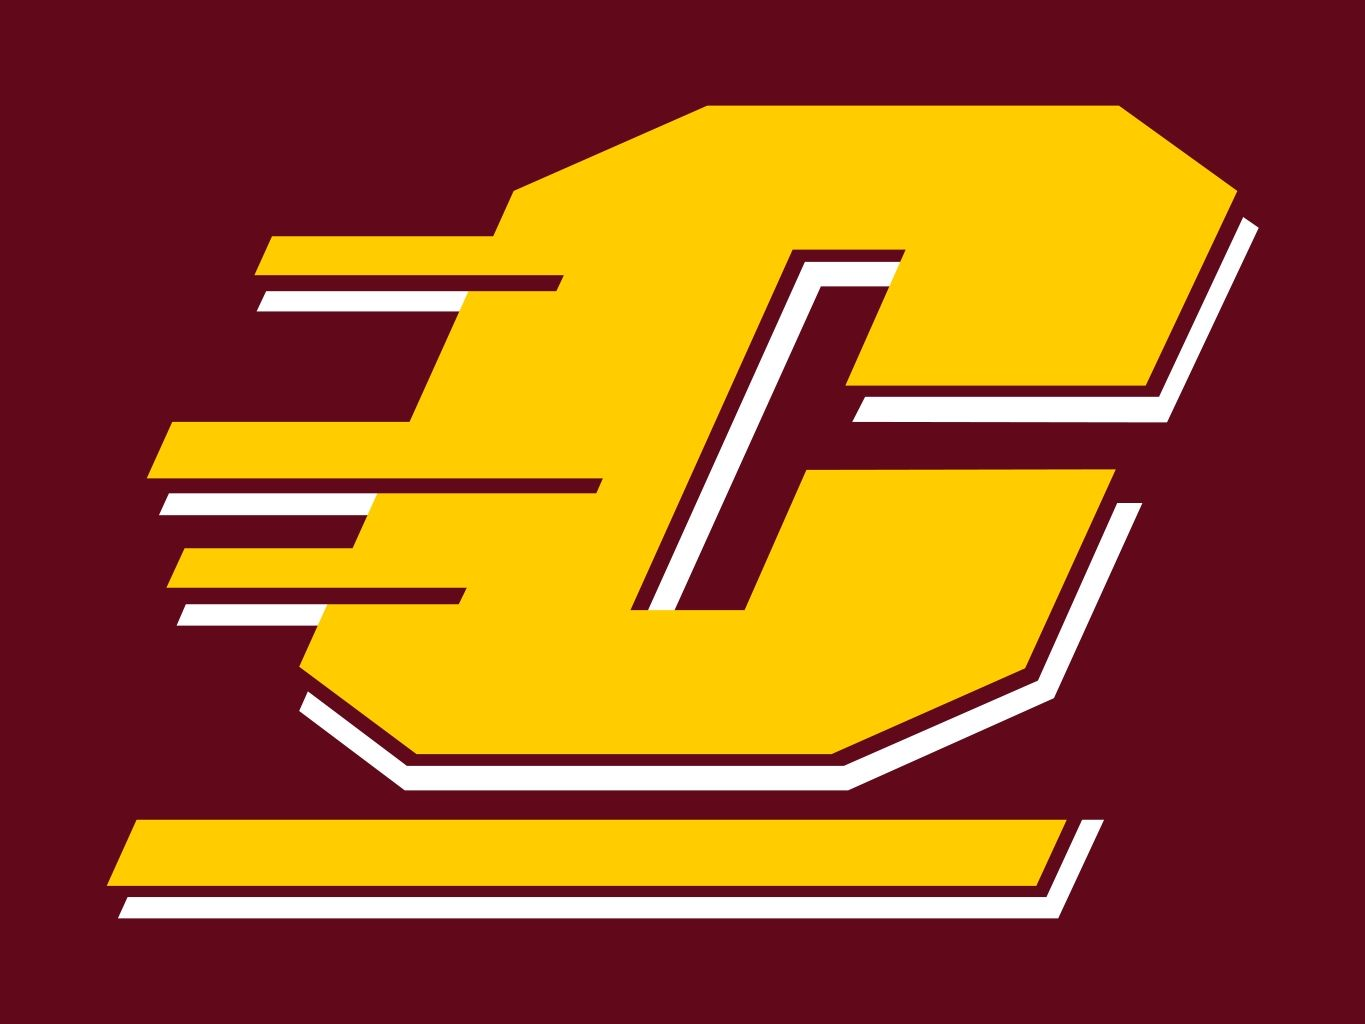 Pin by Jerri Smith on Central Michigan University.